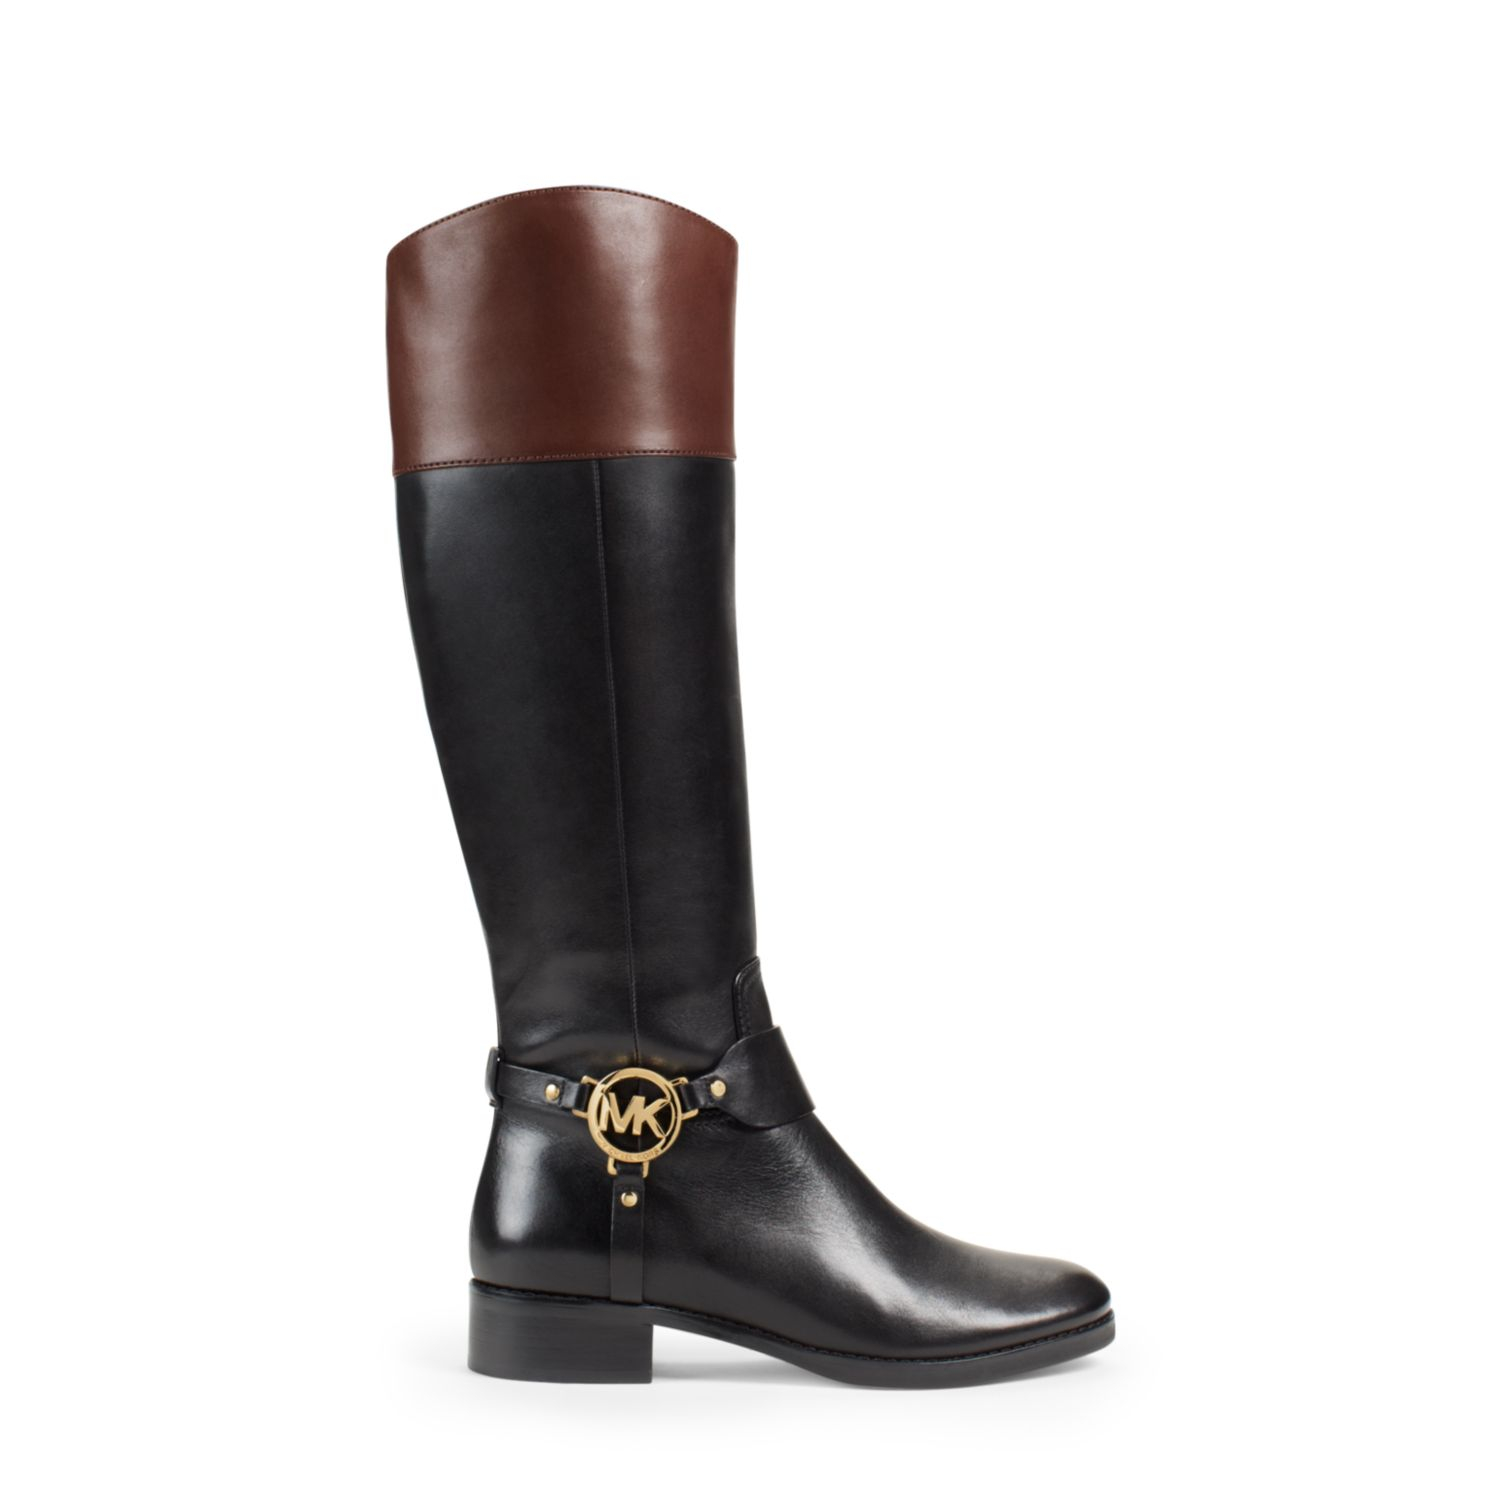 michael kors fulton leather boot in black black